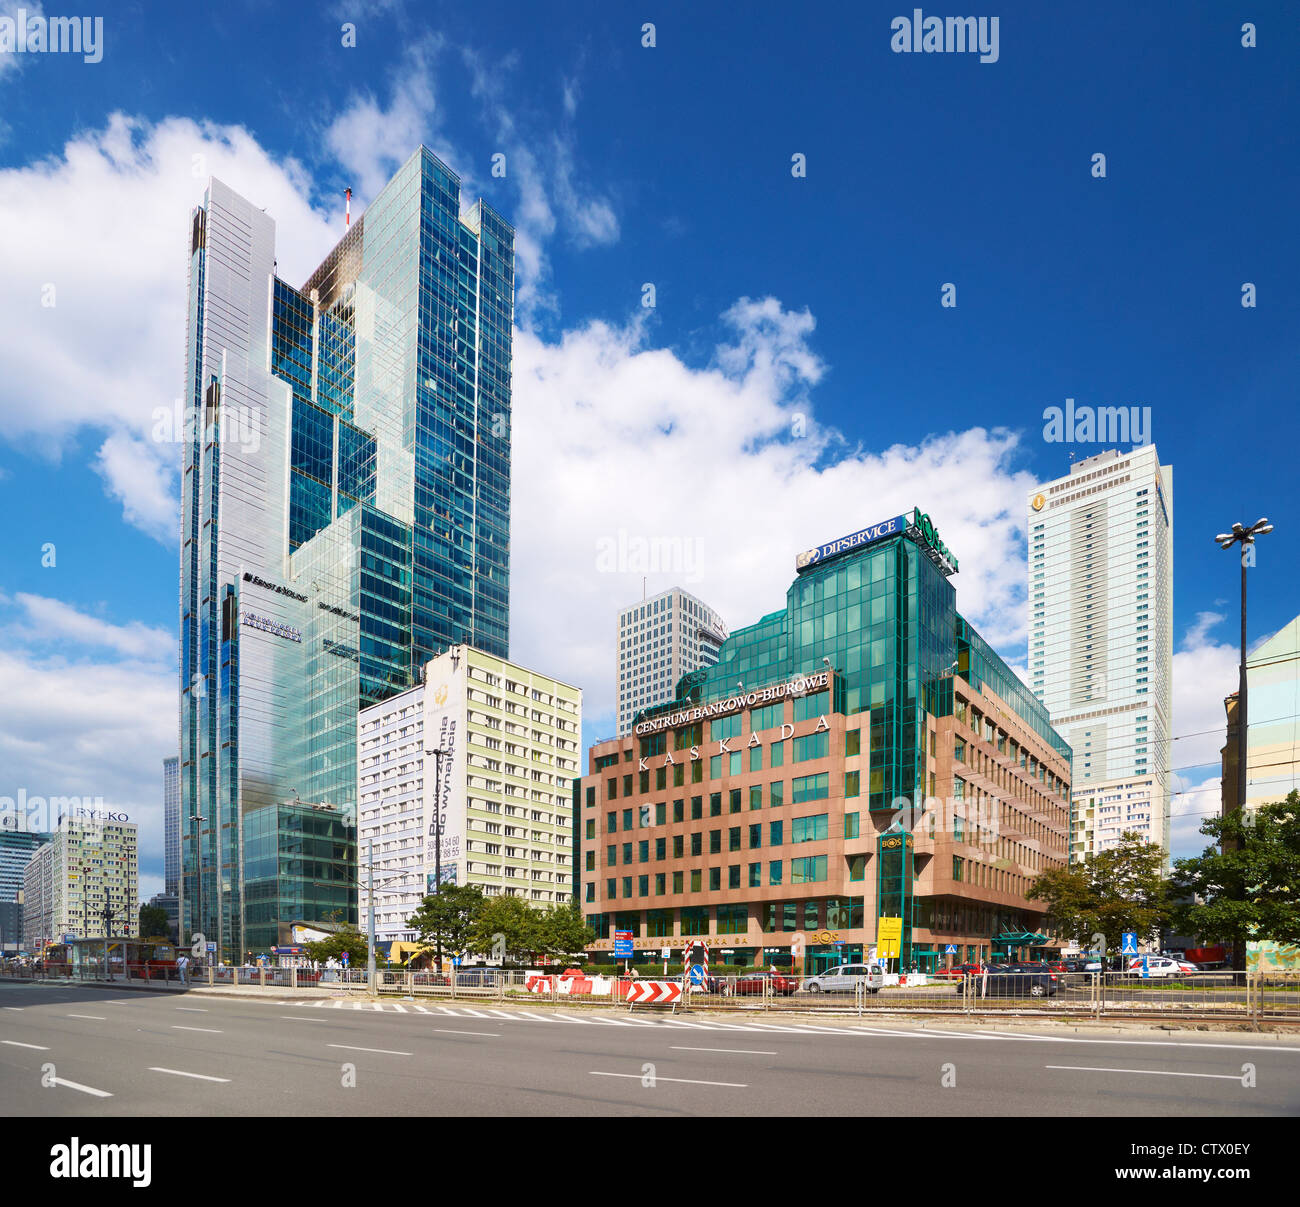 Modern center of Warsaw, Poland, Europe - Stock Image